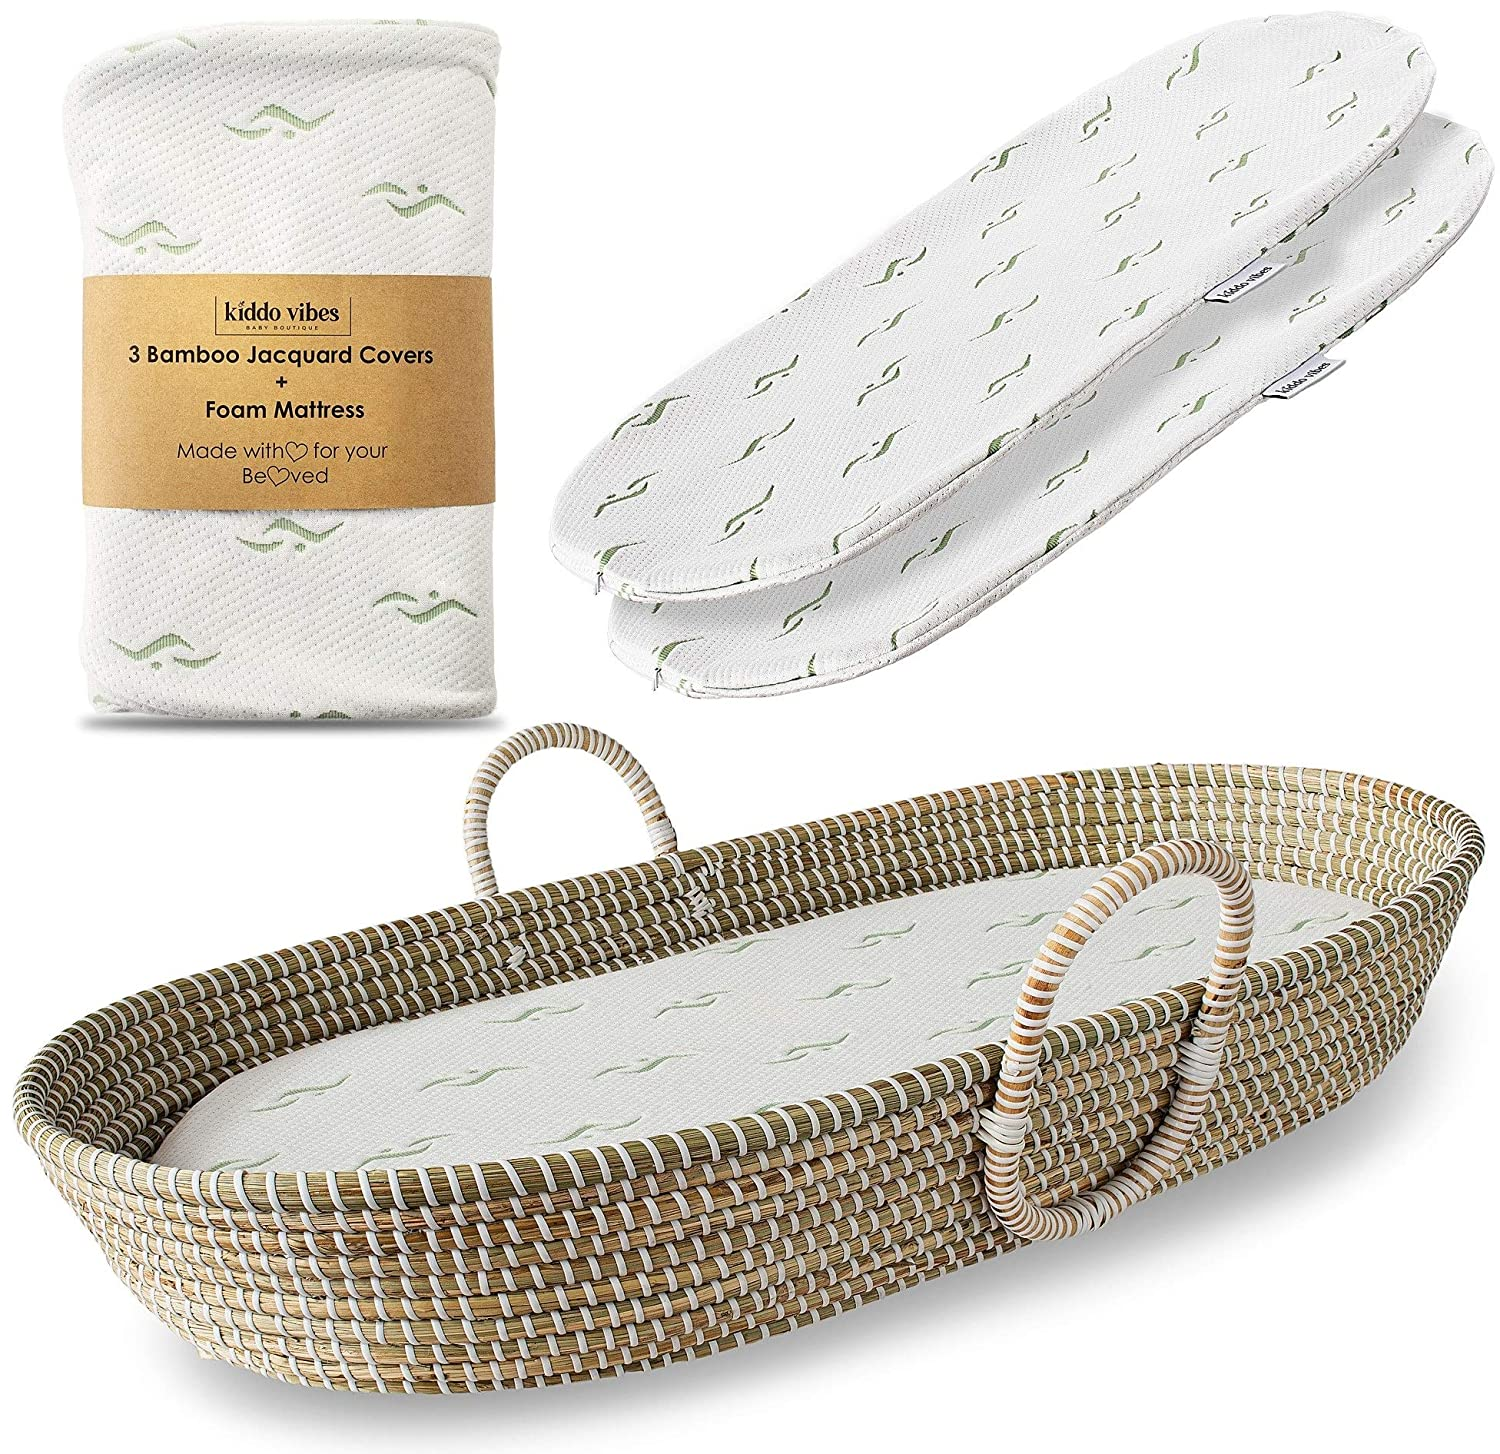 Baby Changing Basket for Nursery Changing Table Set. Baby Moses Basket, Thick Diaper Changing Pad and 3 Soft Bamboo Changing Mat Covers. Newborn Seagrass Basket, Cute Baby Shower Gift